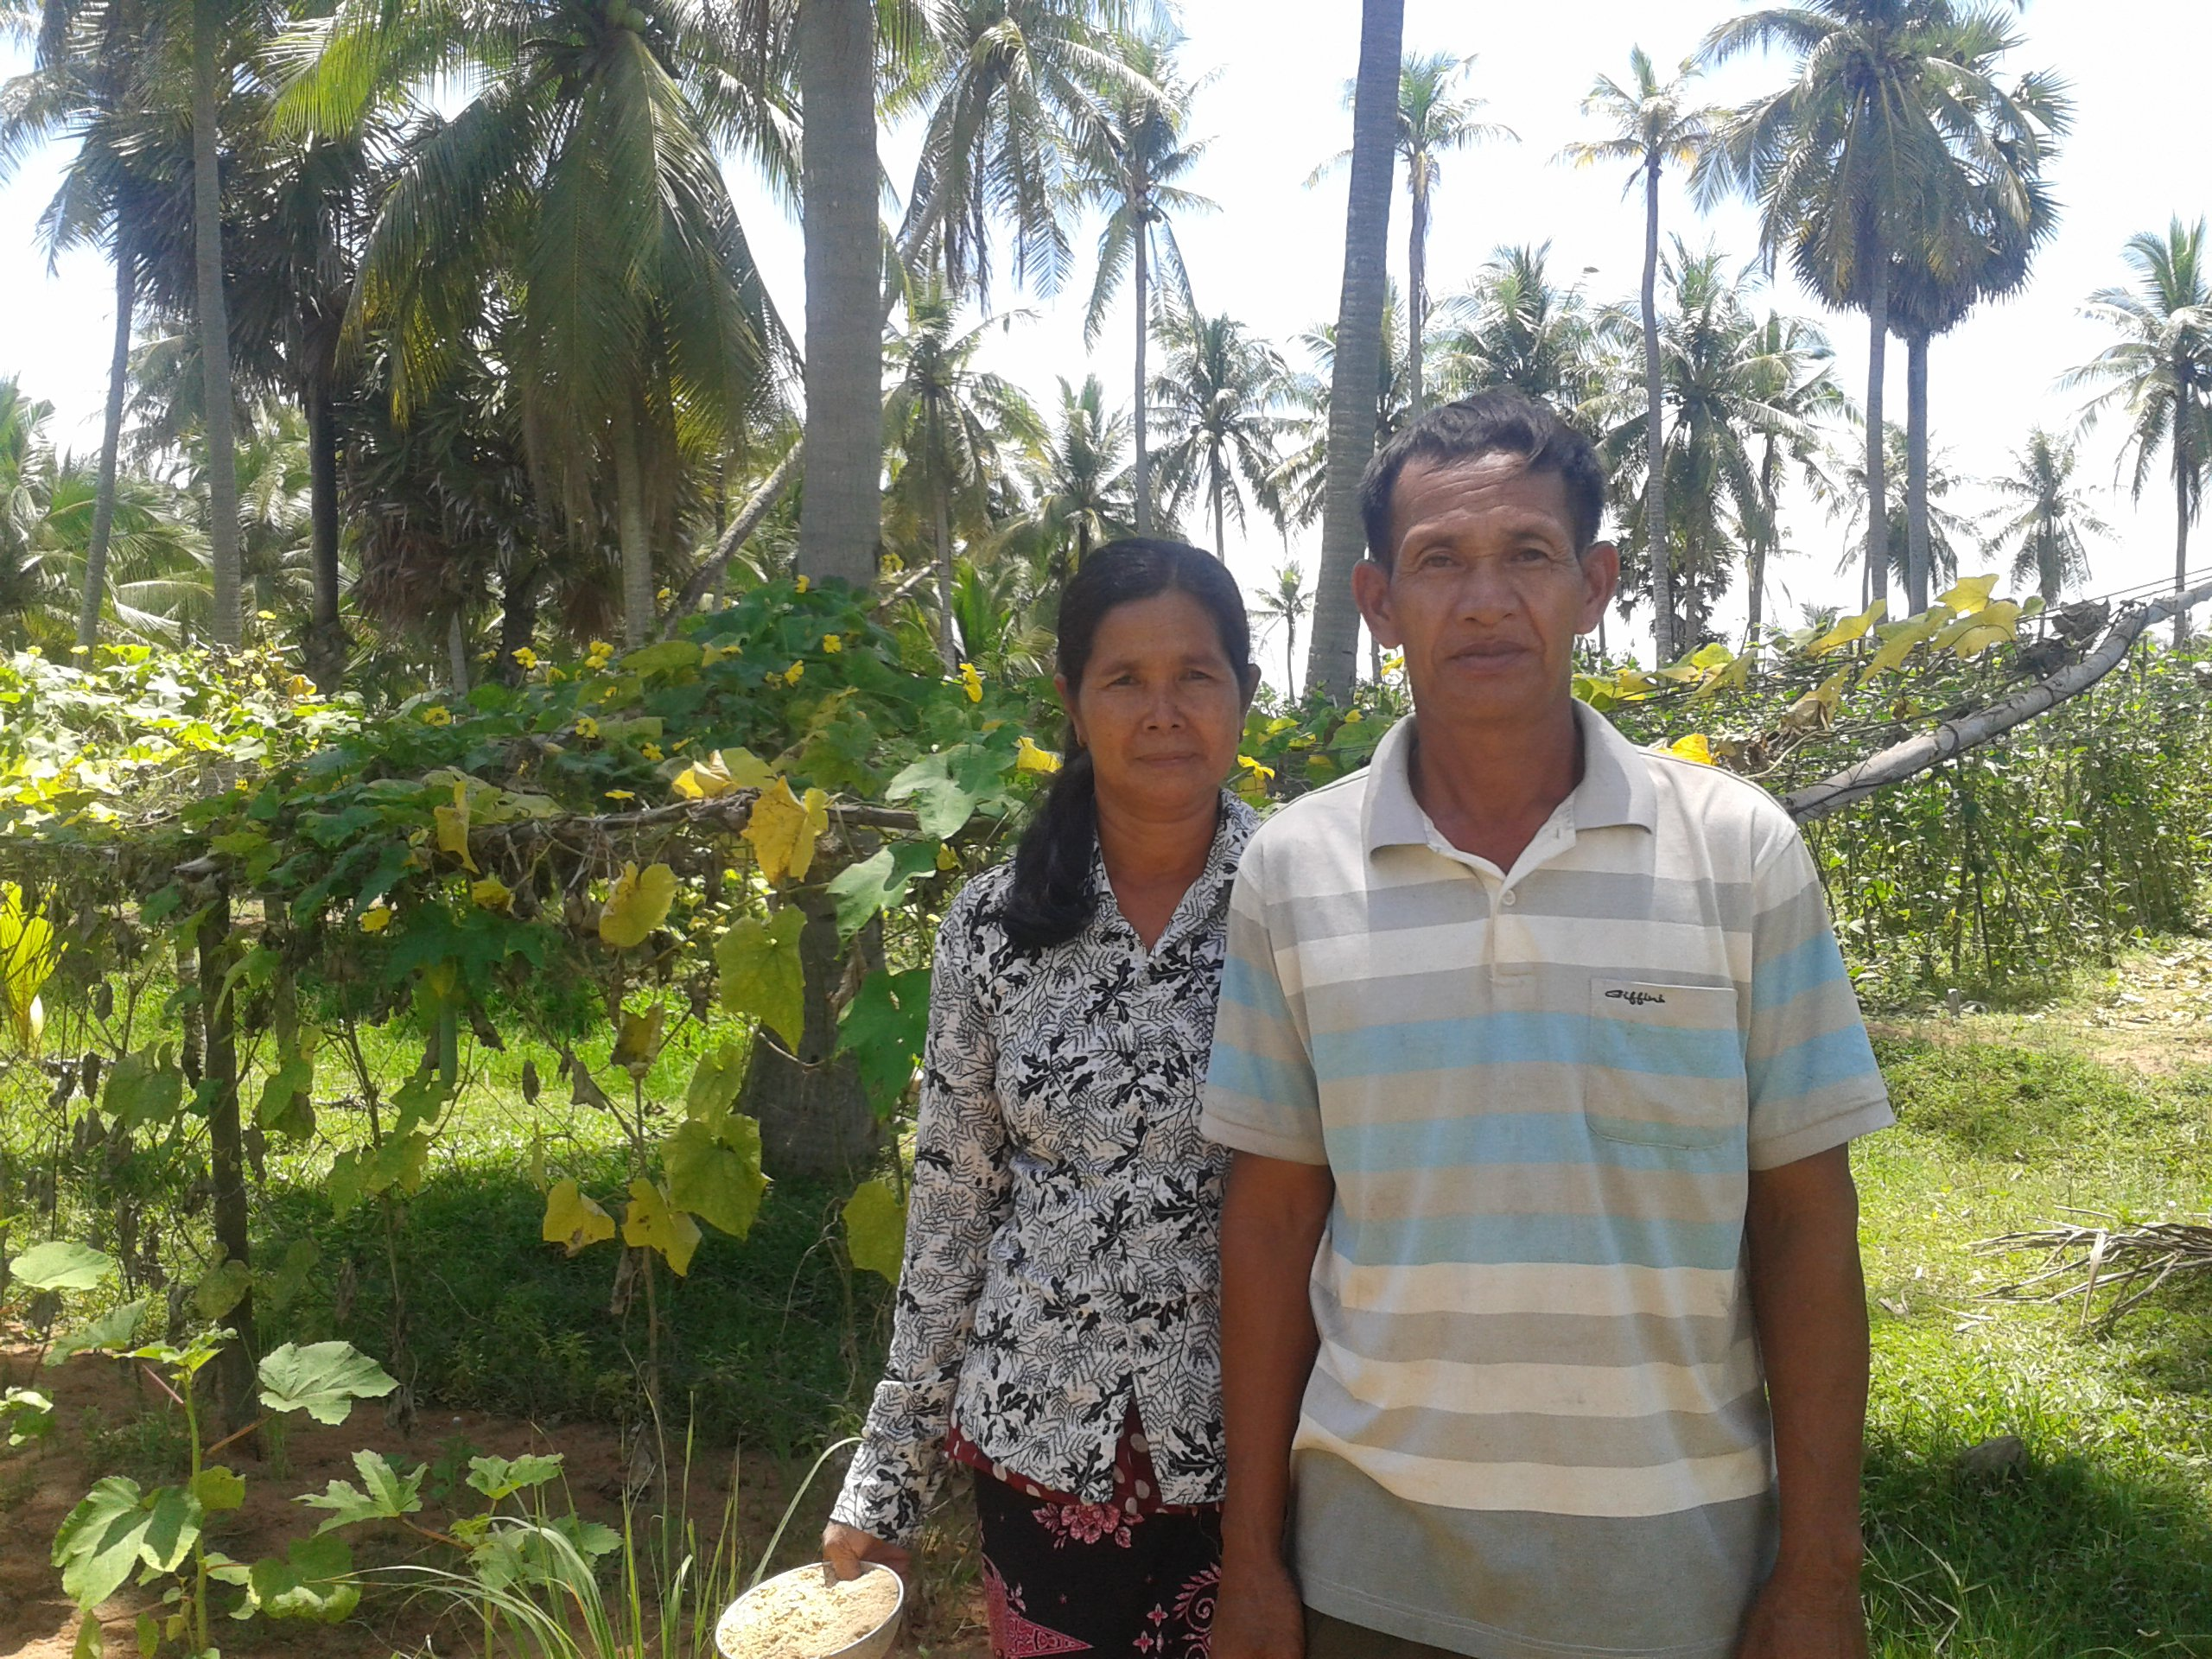 Wife and Husband in their vegetable garden, rural Cambodia, 2017. Photo: Sharada Keats